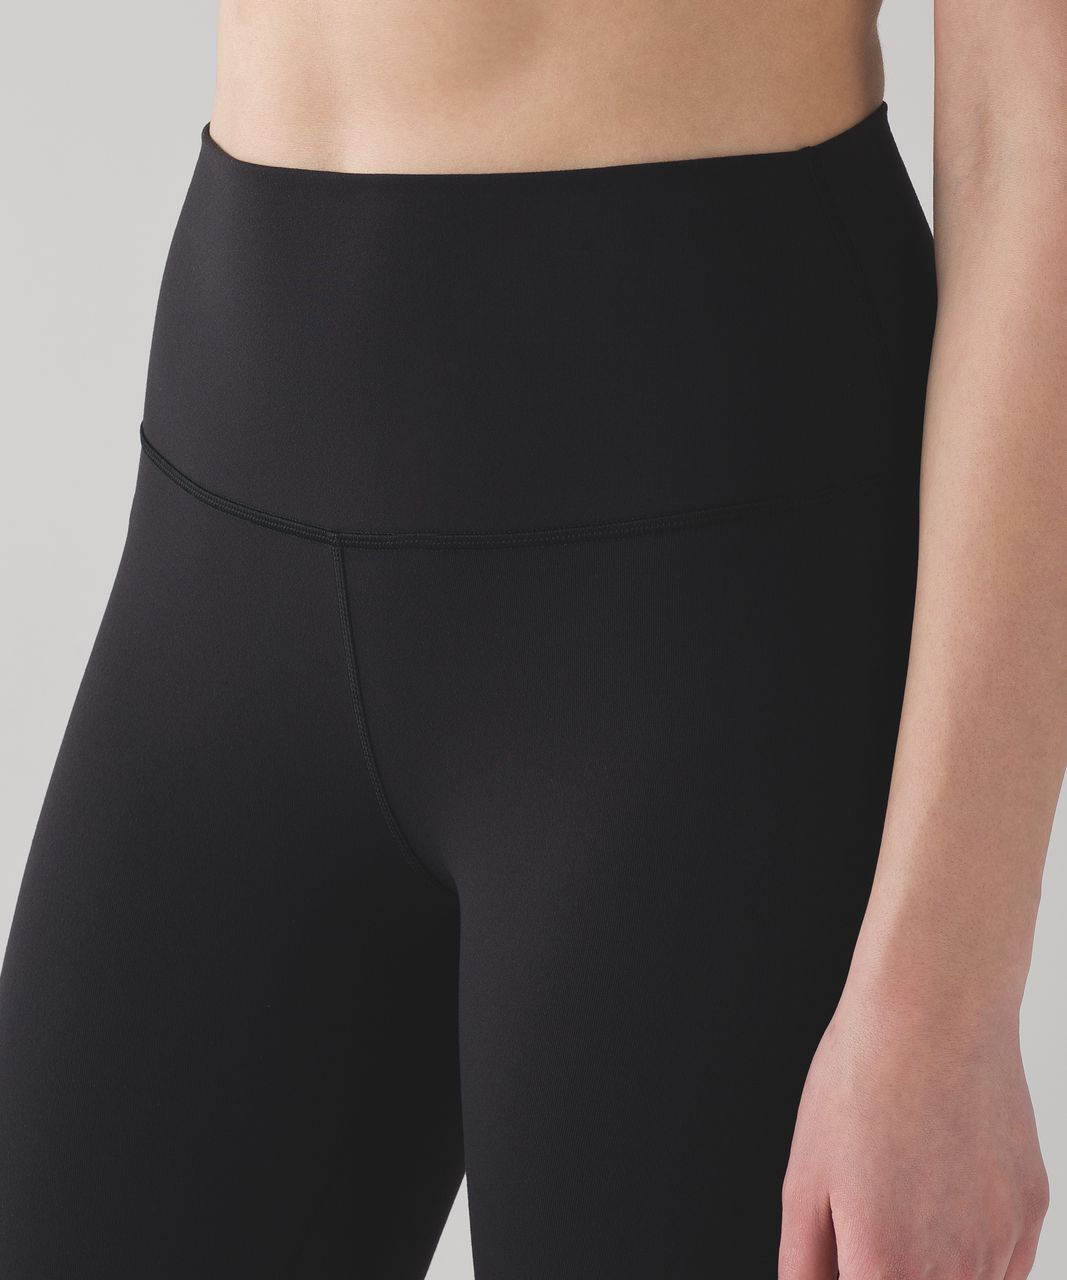 "Lululemon Wunder Under Hi-Rise Tight (Full-On Luon 28"") - Black"